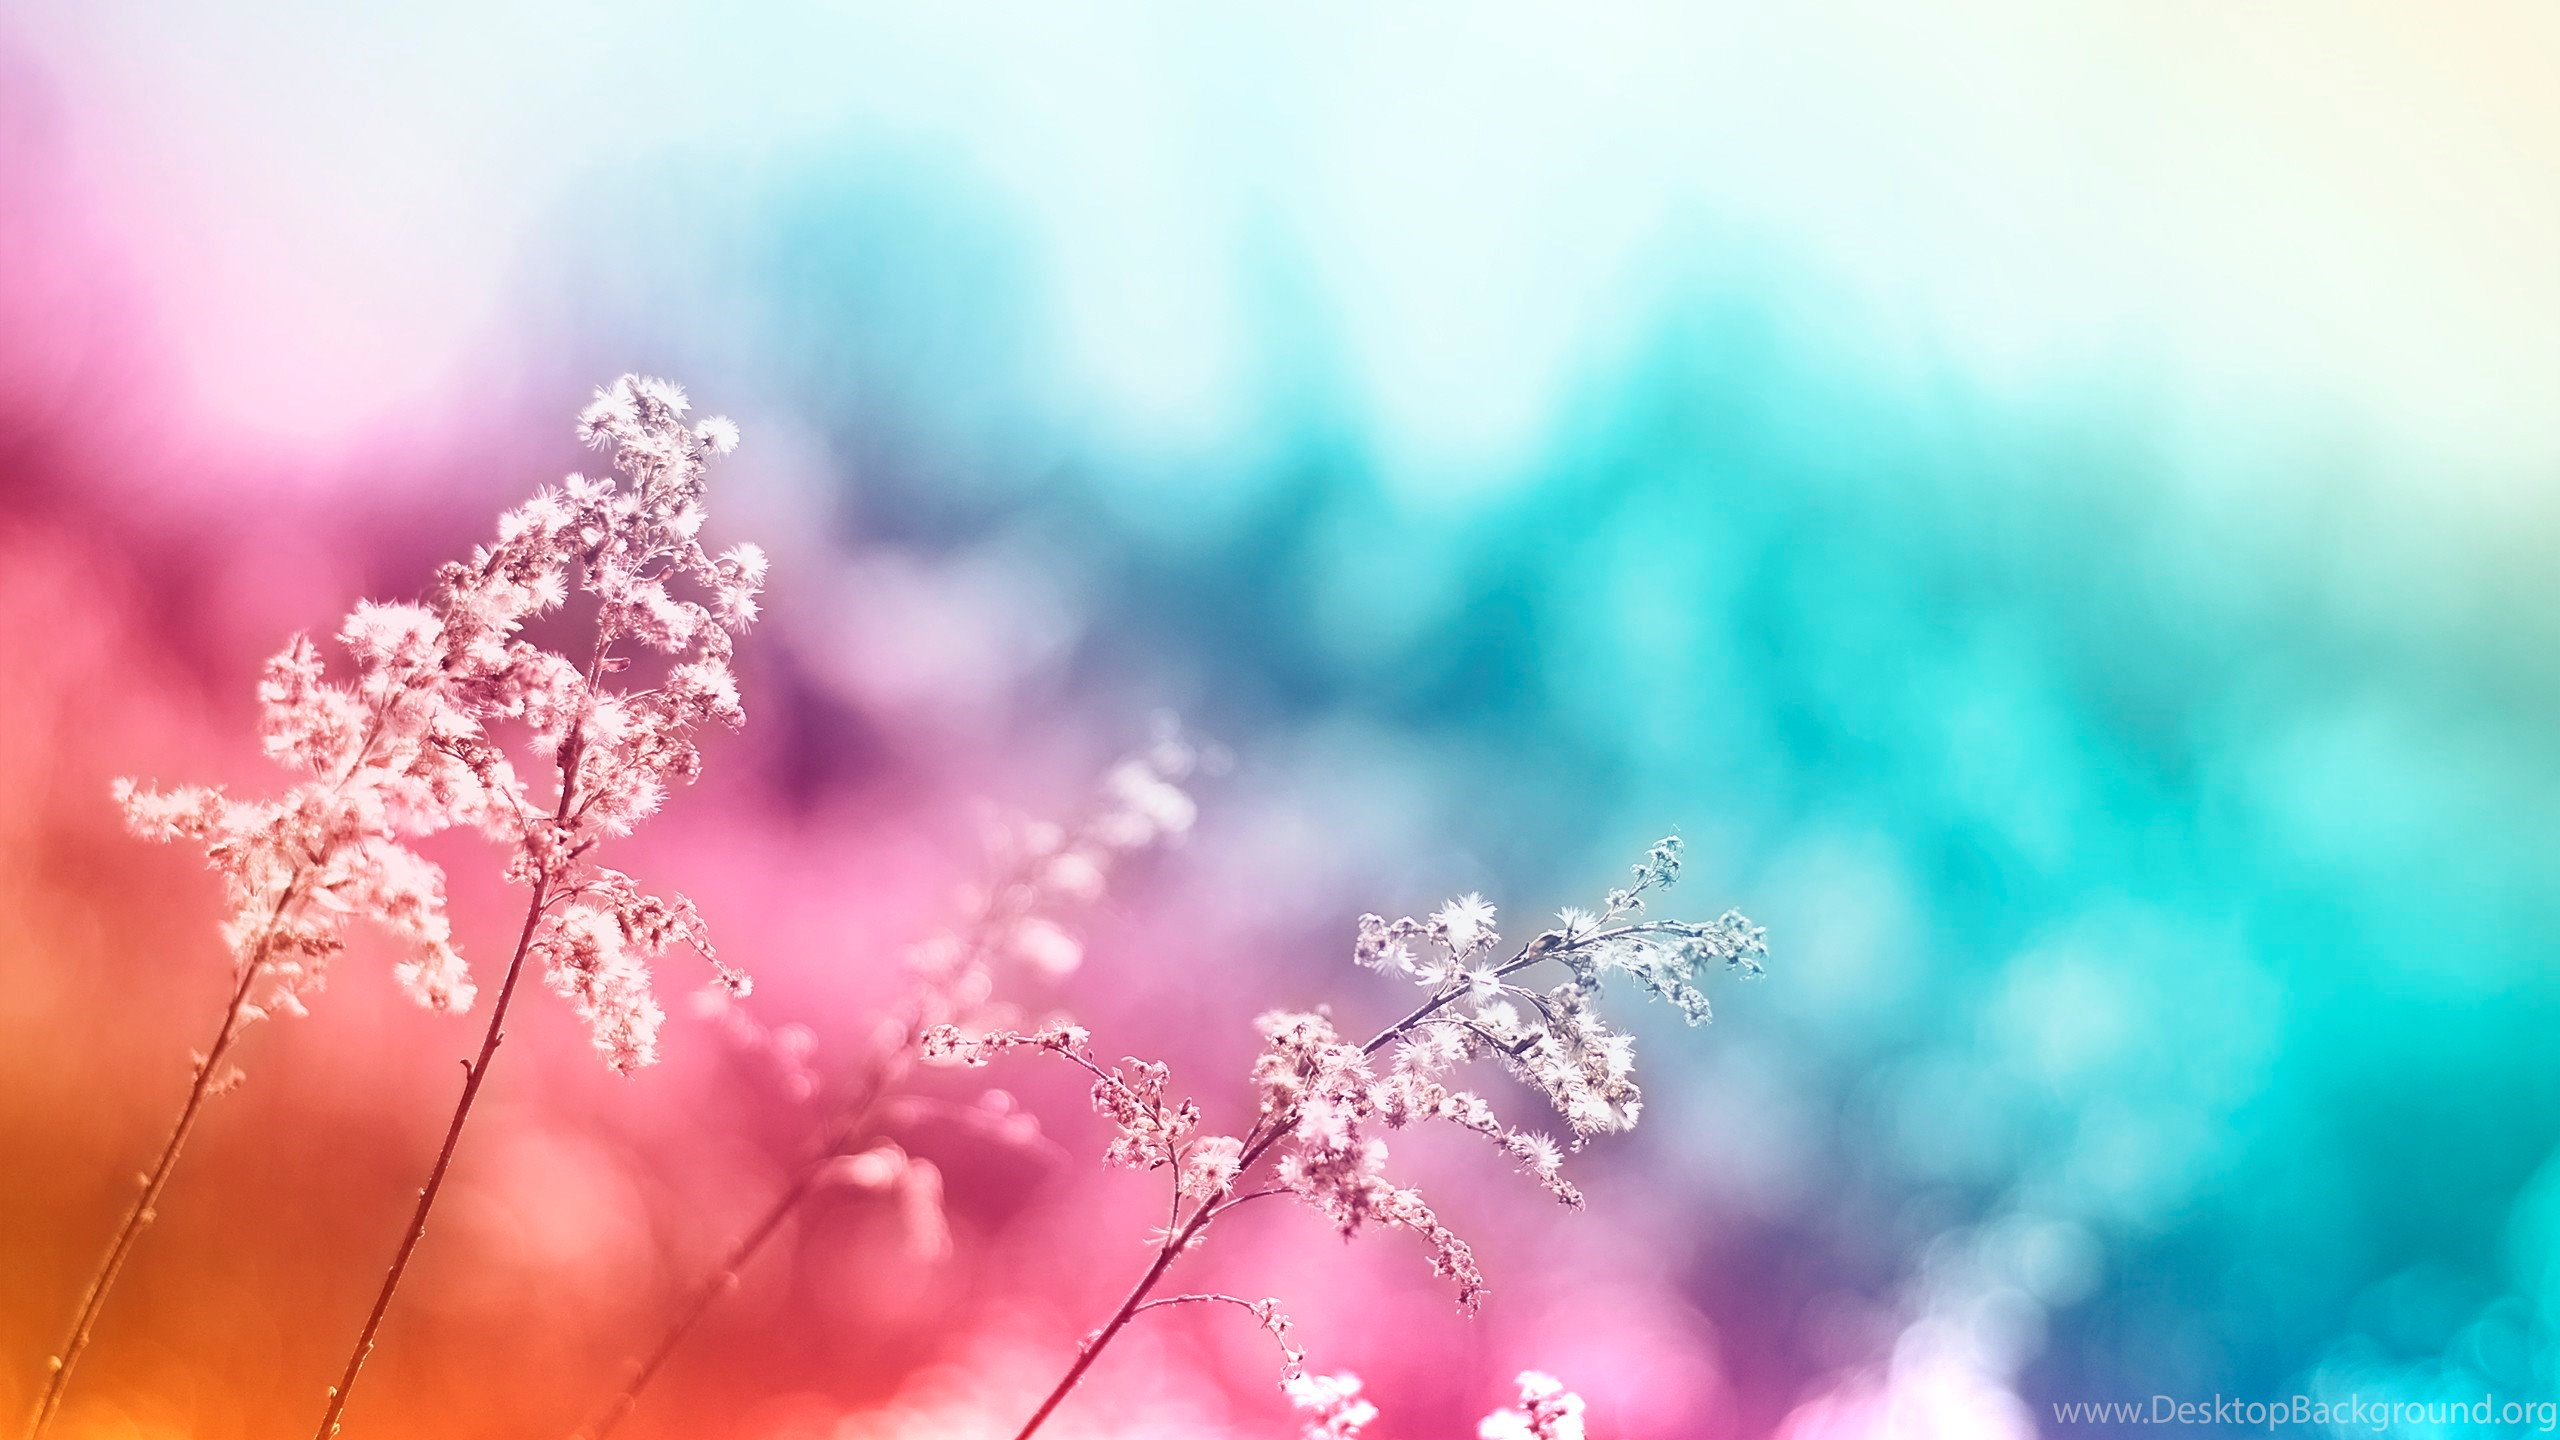 Pretty Backgrounds For Tablet Colorful Images Wallpaper